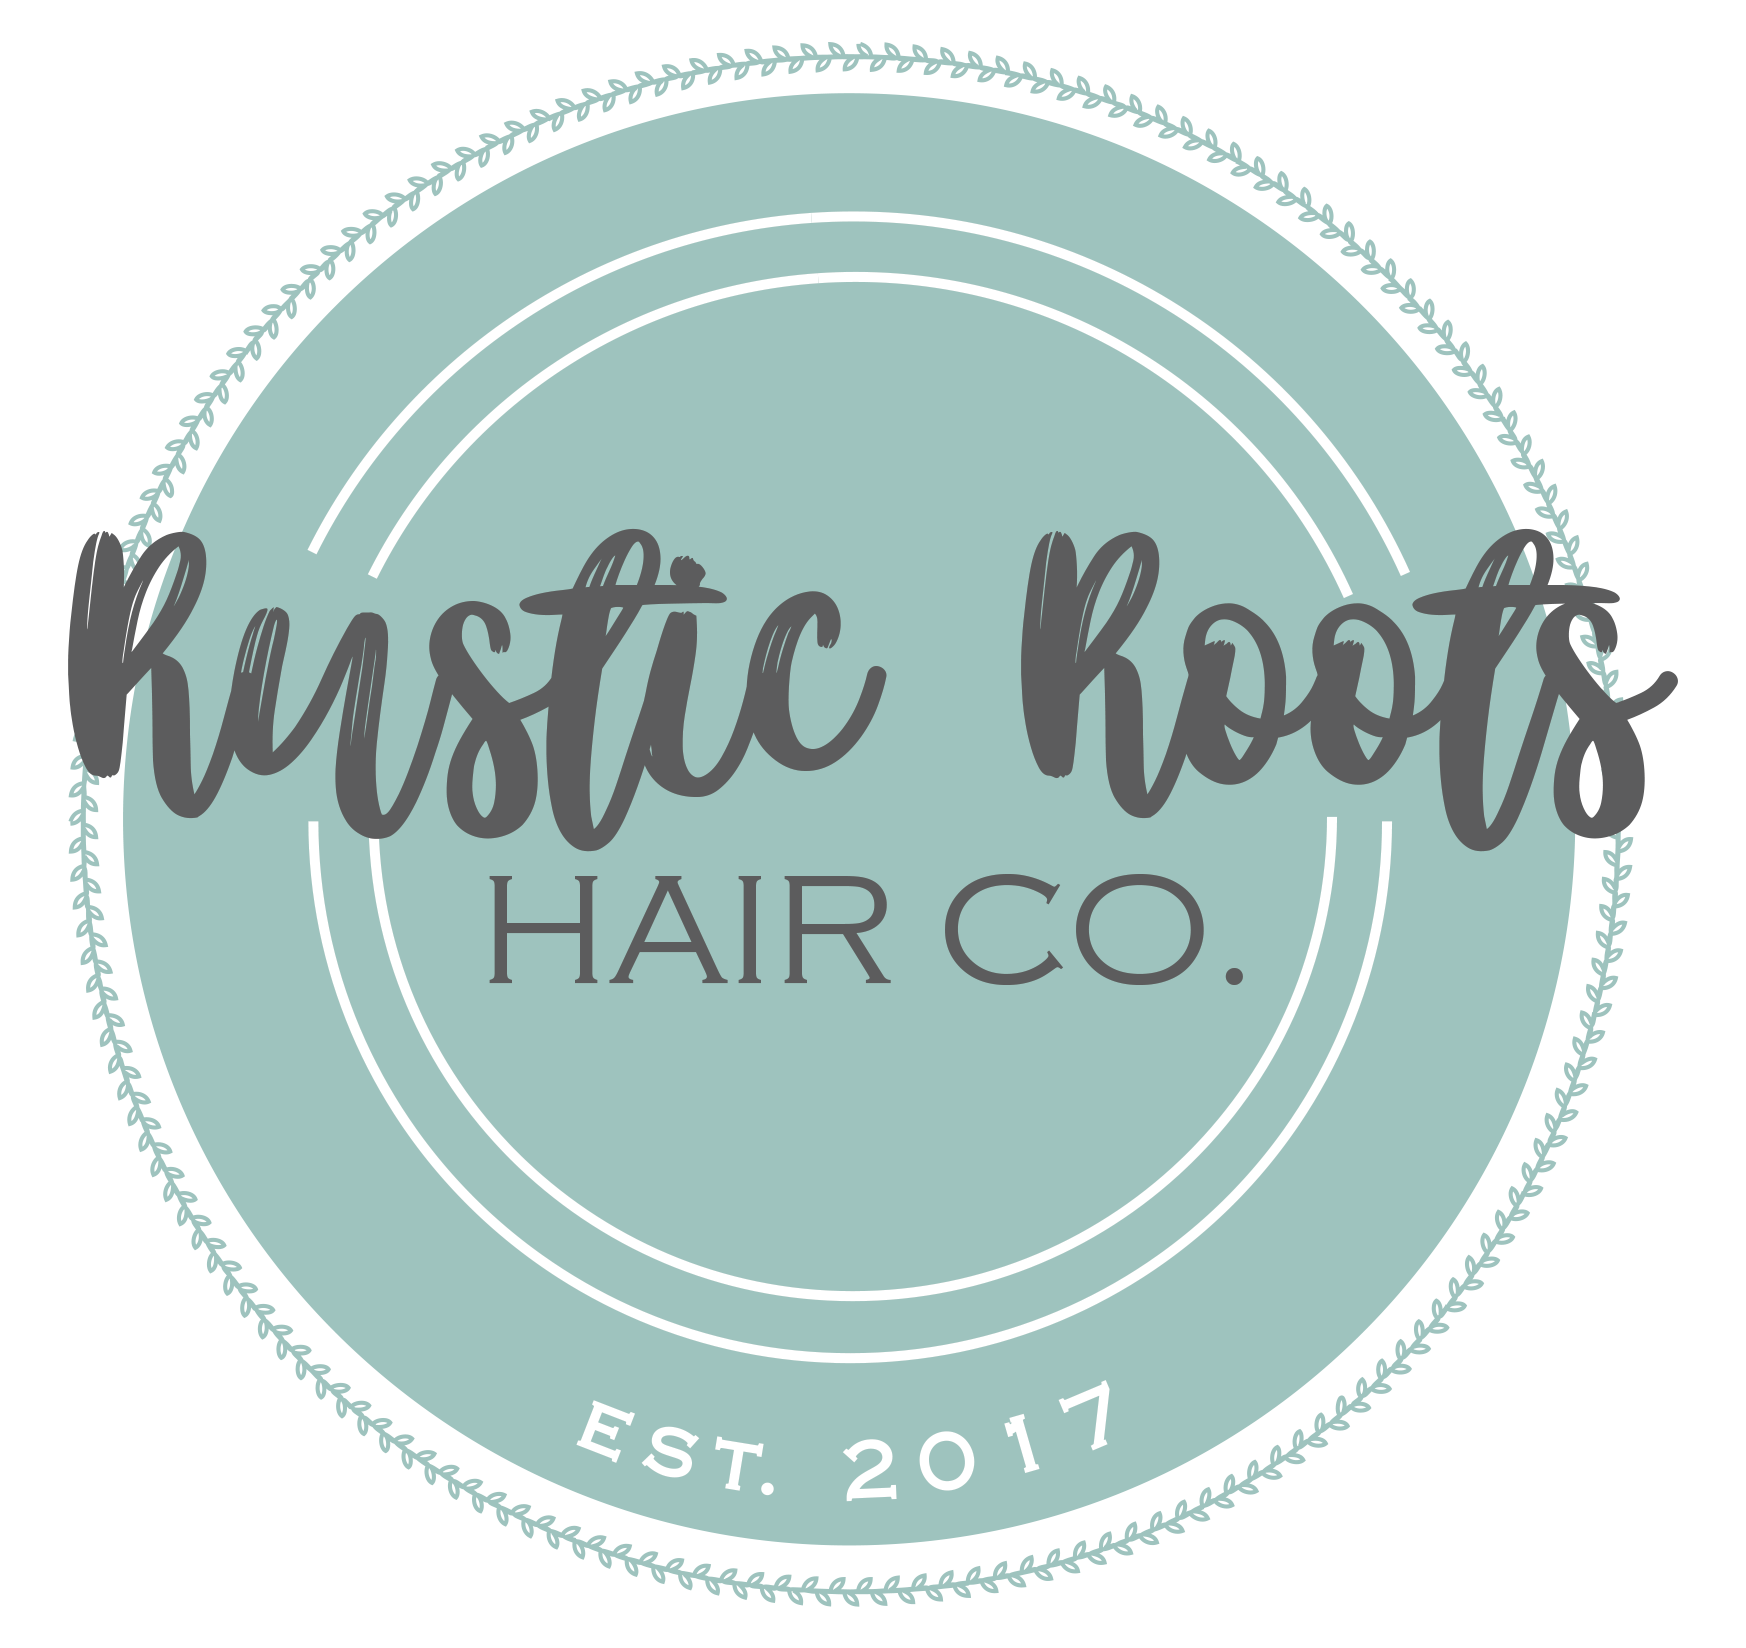 Rustic Roots Hair Co